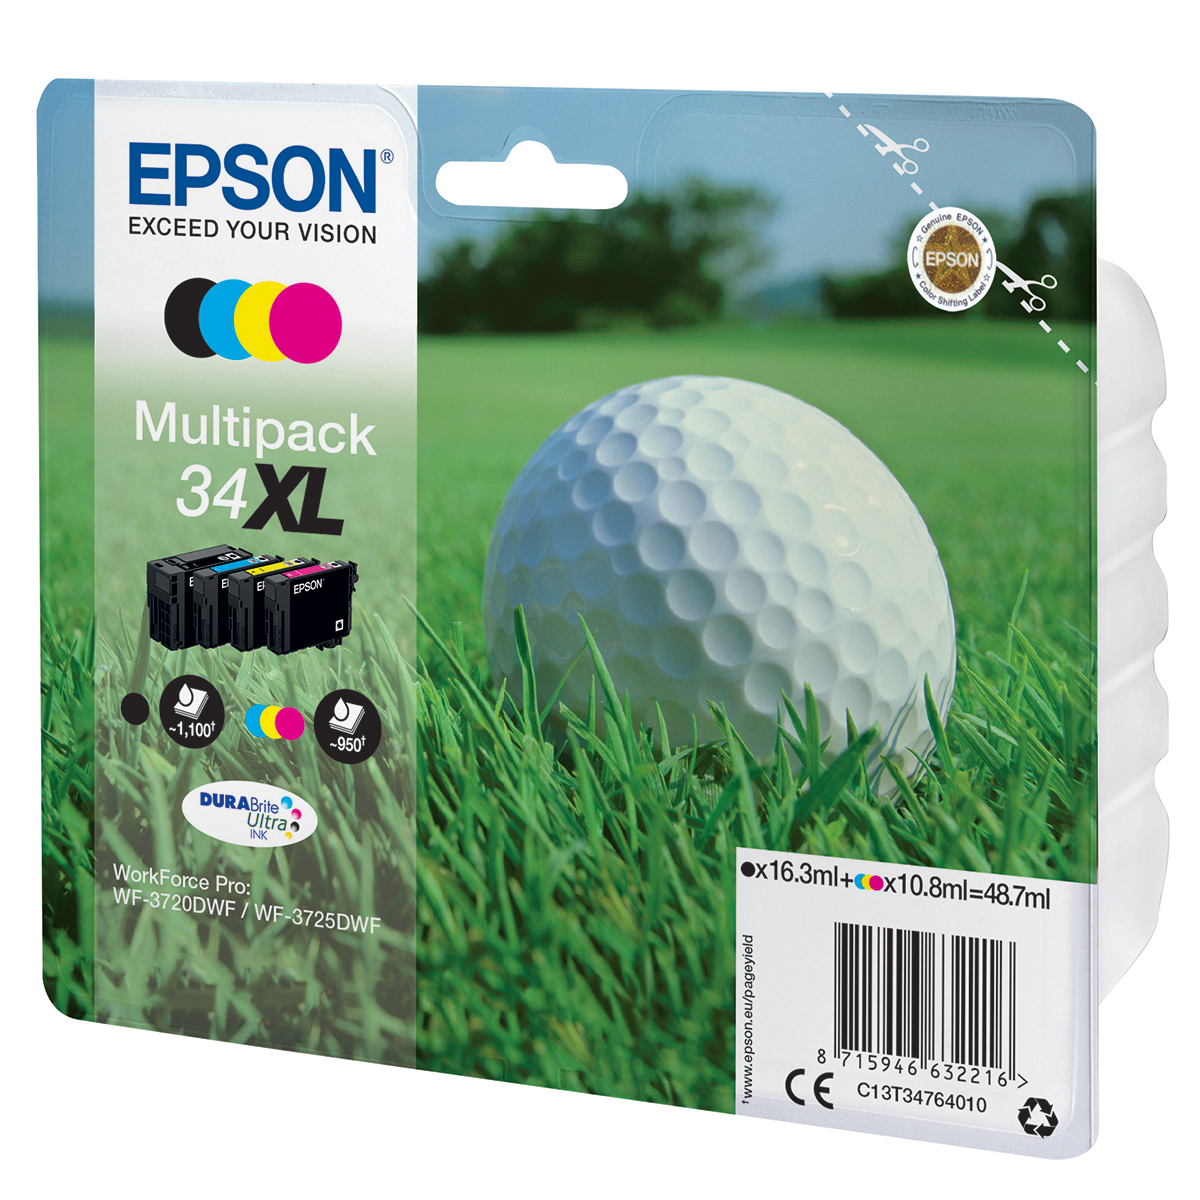 Epson 34XL Multipack 4 Ink Durabrite Ultra Cartridges